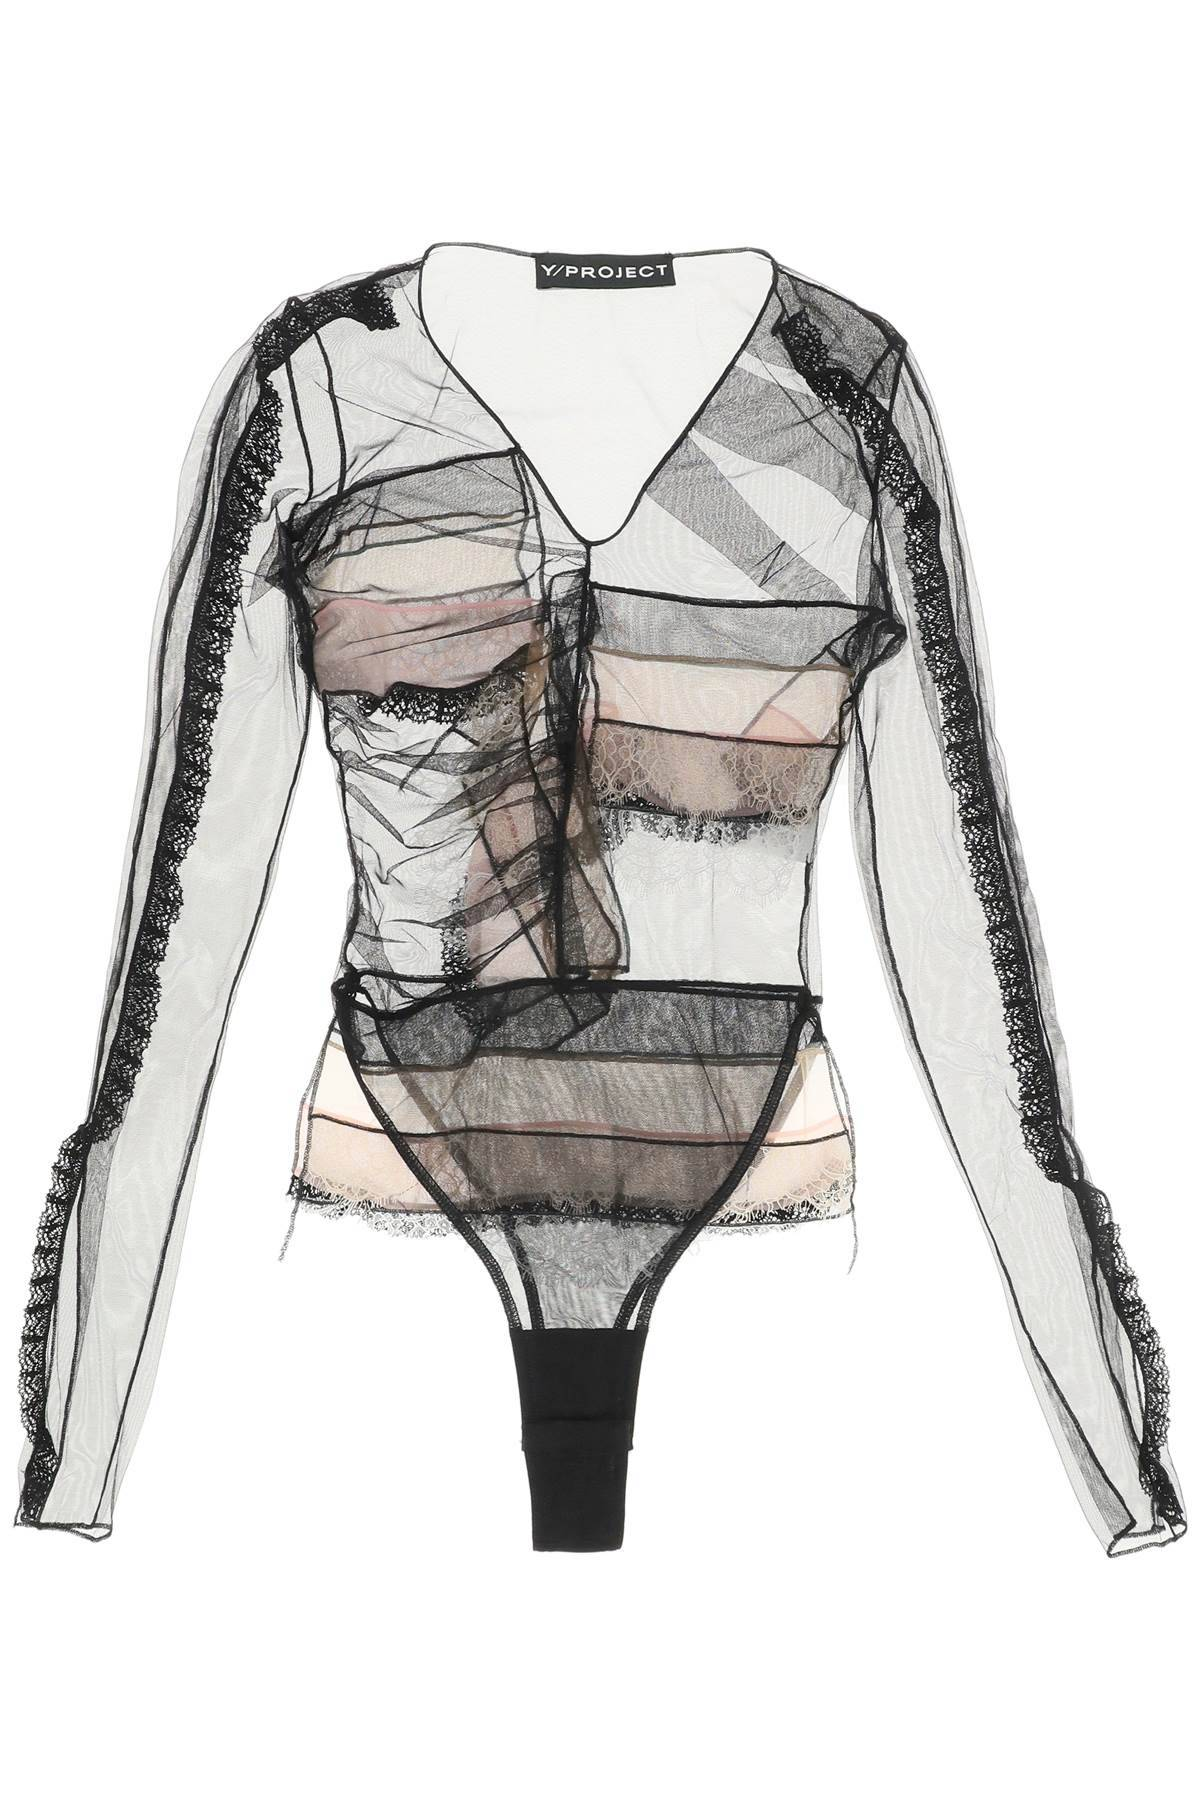 Y PROJECT BODY IN TULLE CON PIZZO 38 Nero, Rosa, Bianco